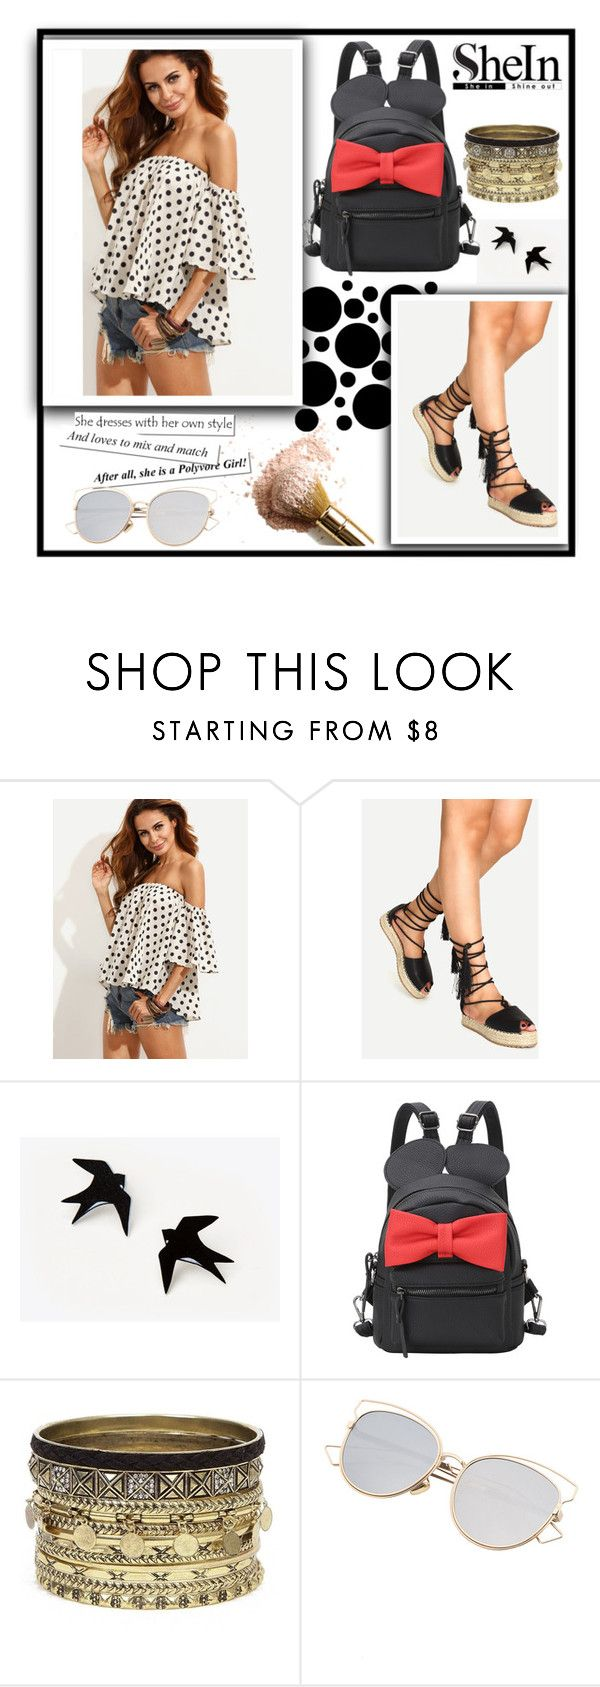 """""""Shein 1."""" by b-necka ❤ liked on Polyvore featuring Daytrip, Sheinside and shein"""